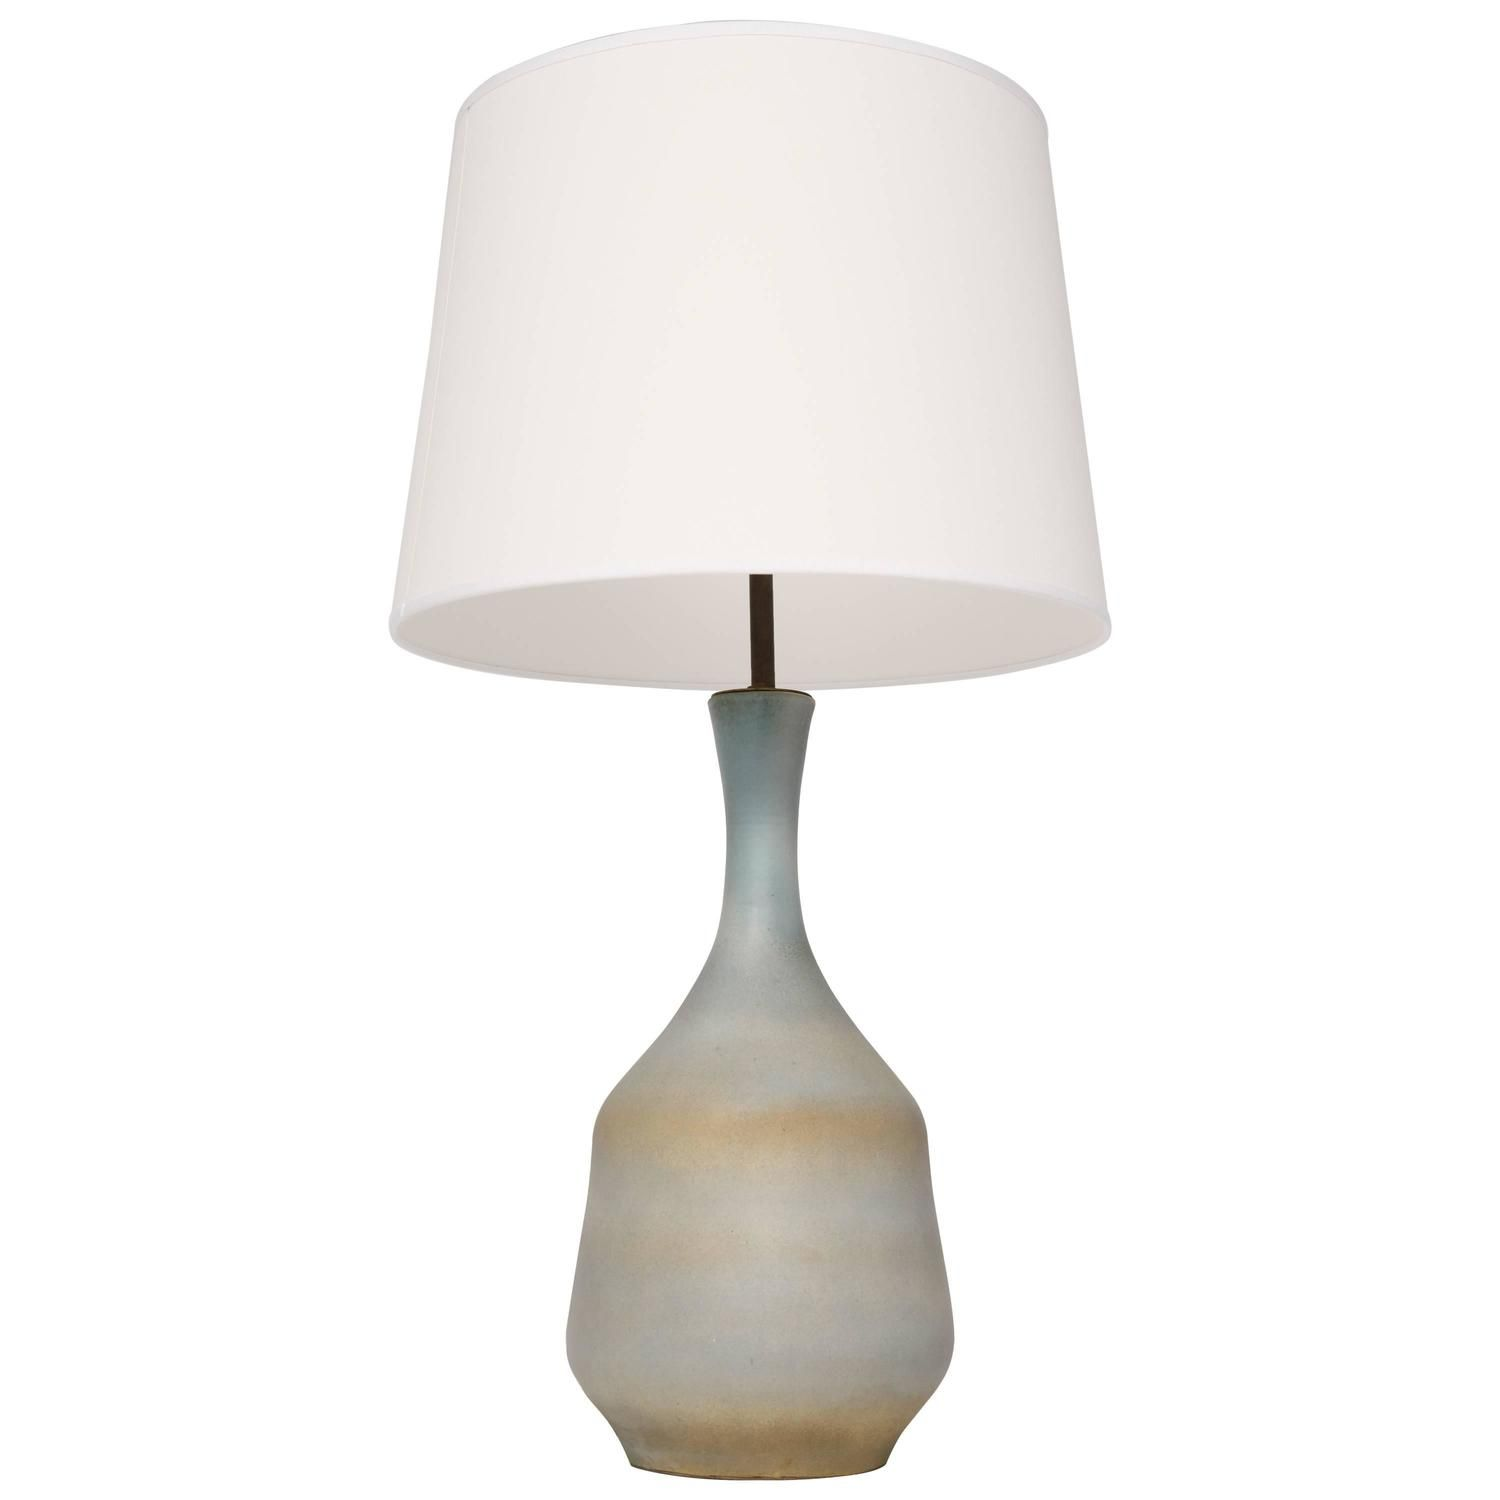 Suzanne Ramie Madoura, Ceramic Table Lamp, Circa 1960 | From A Unique  Collection Of